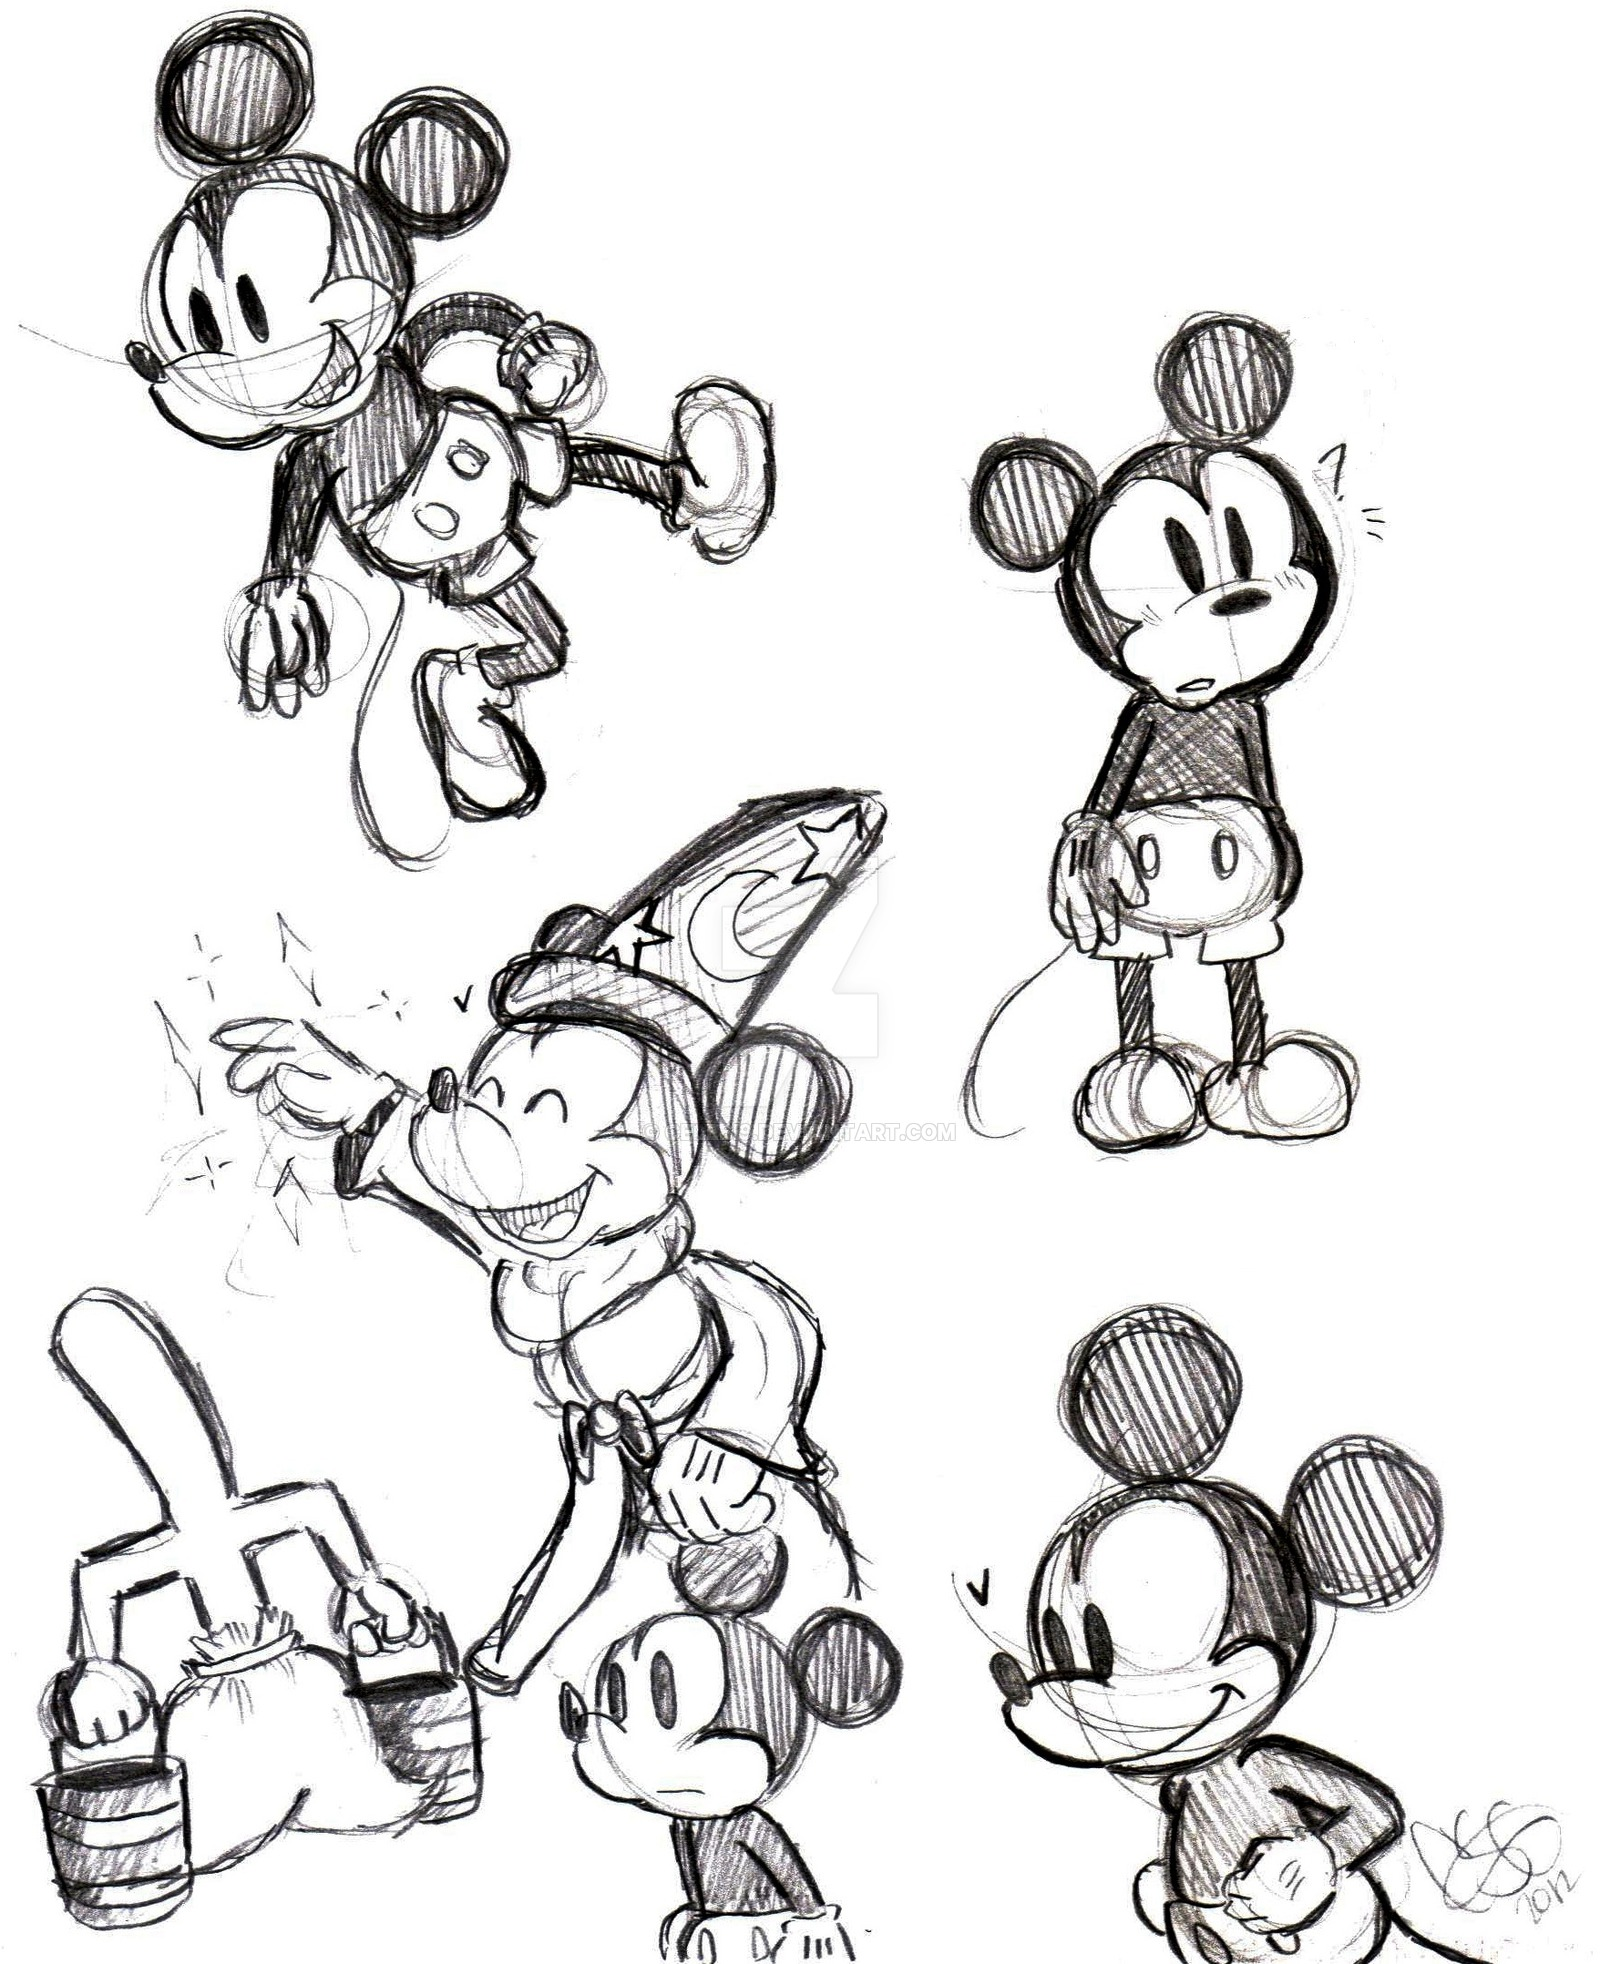 Mickey Mouse Original Drawing additionally Bunny Clipart Easy likewise Bulldog Mascot Clipart also Bugs Bunny Coloring Pages together with E03b4f3f926eee54. on gangster bugs bunny coloring pages